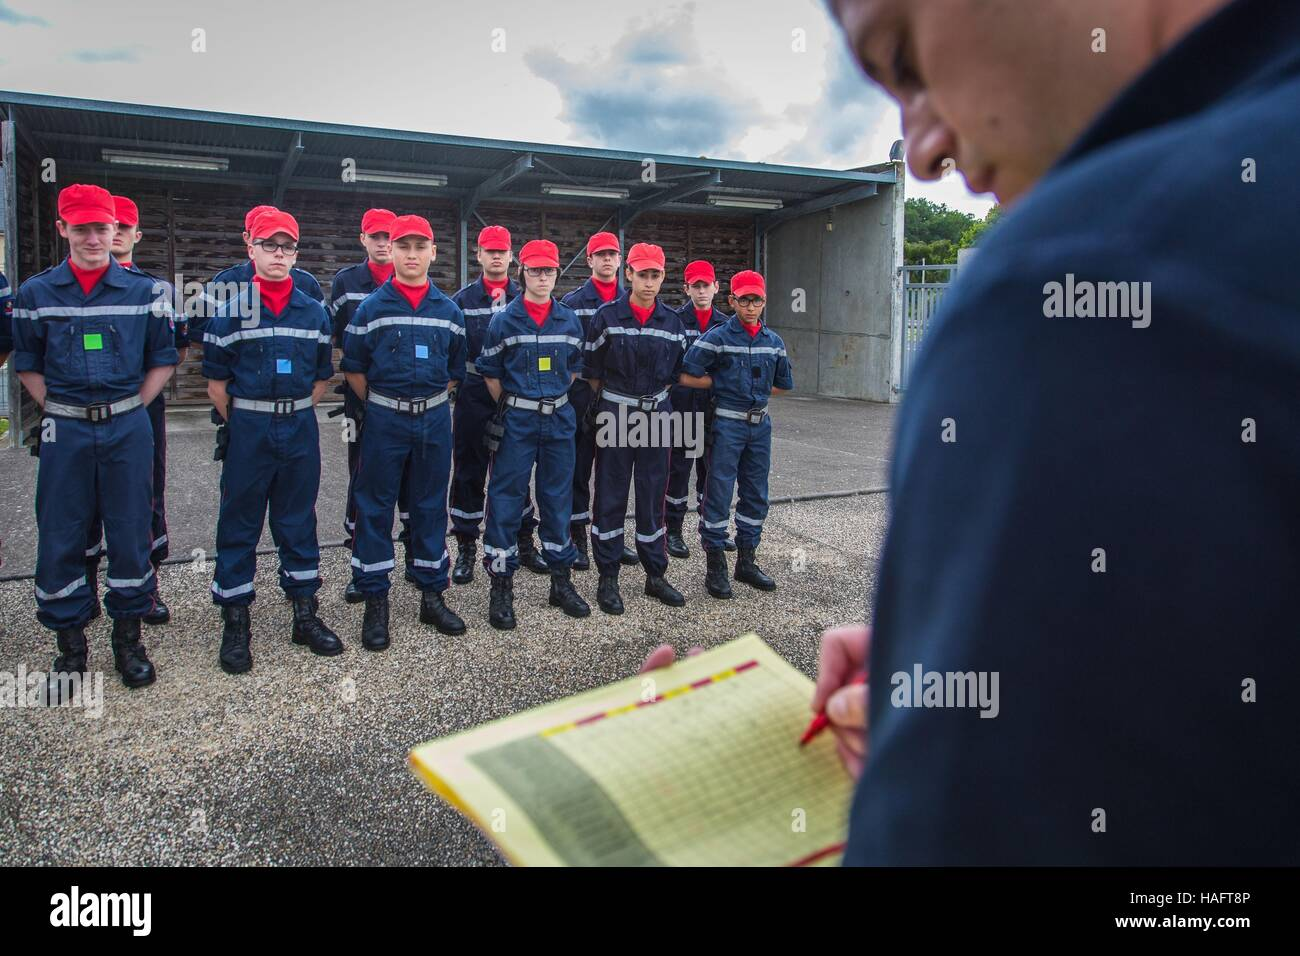 YOUNG FIREFIGHTERS, JSP - Stock Image